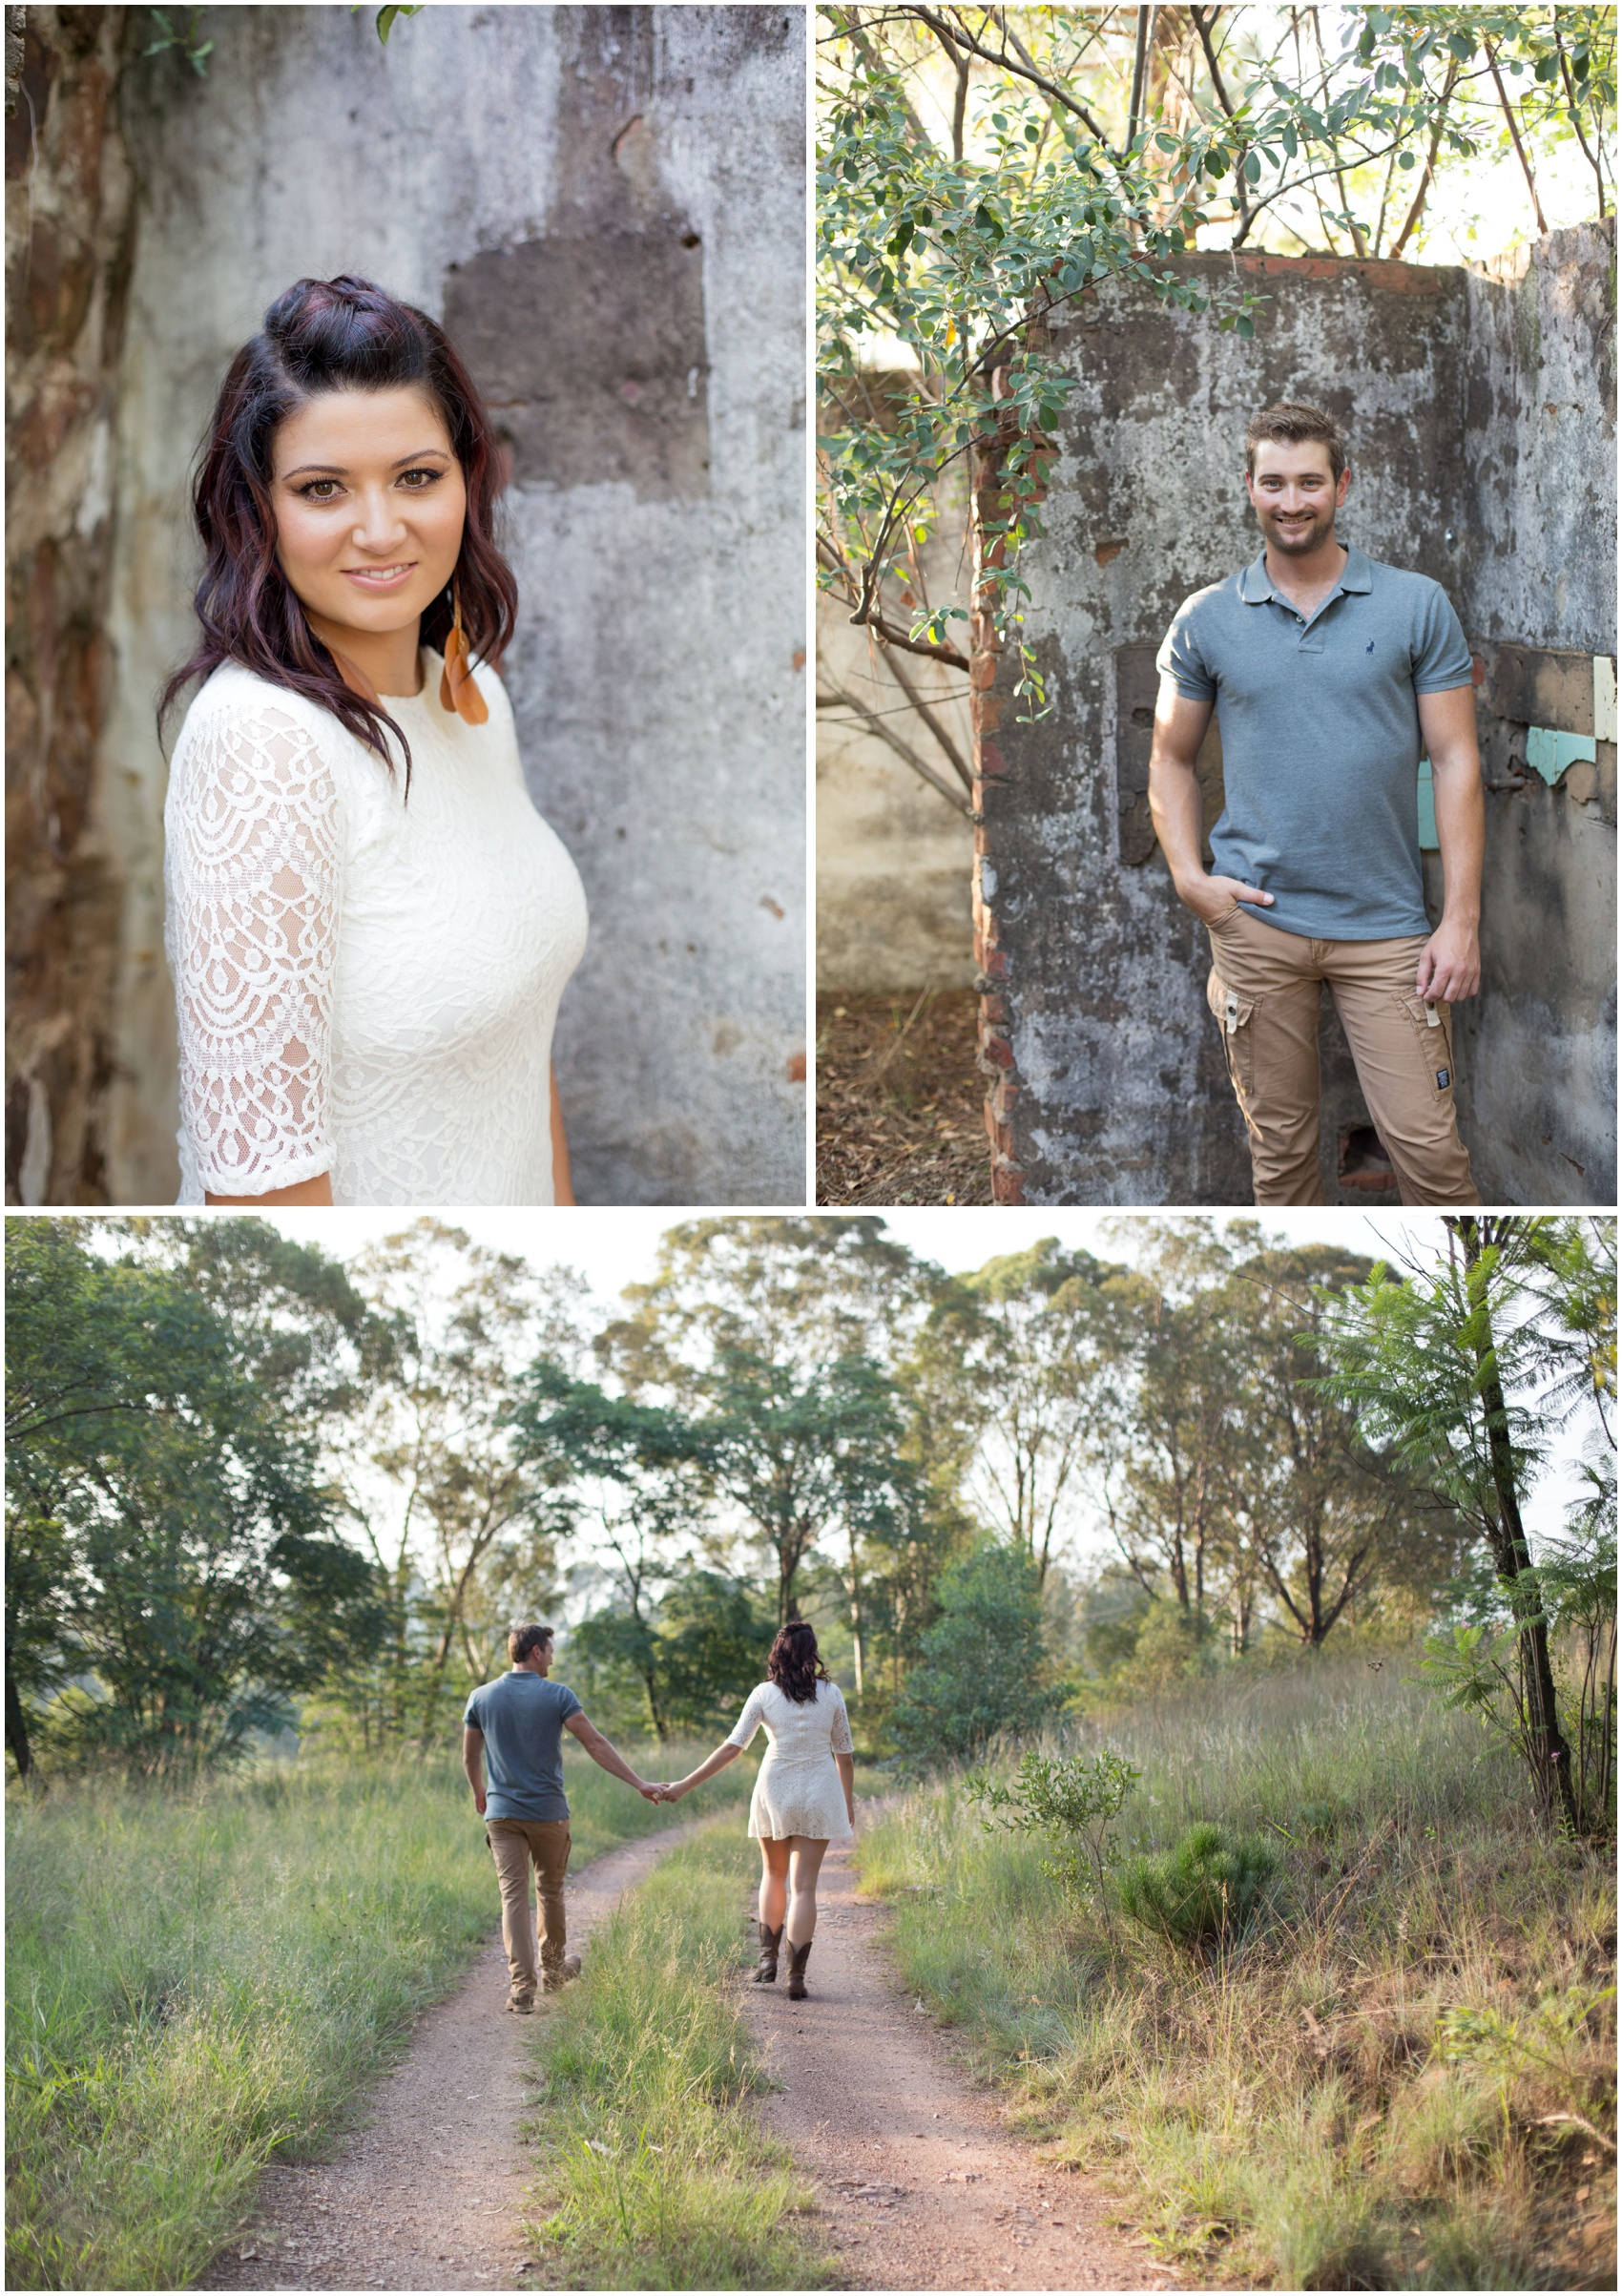 rosemary_hill_engagement_shoot_stephanie_and_jannie_05